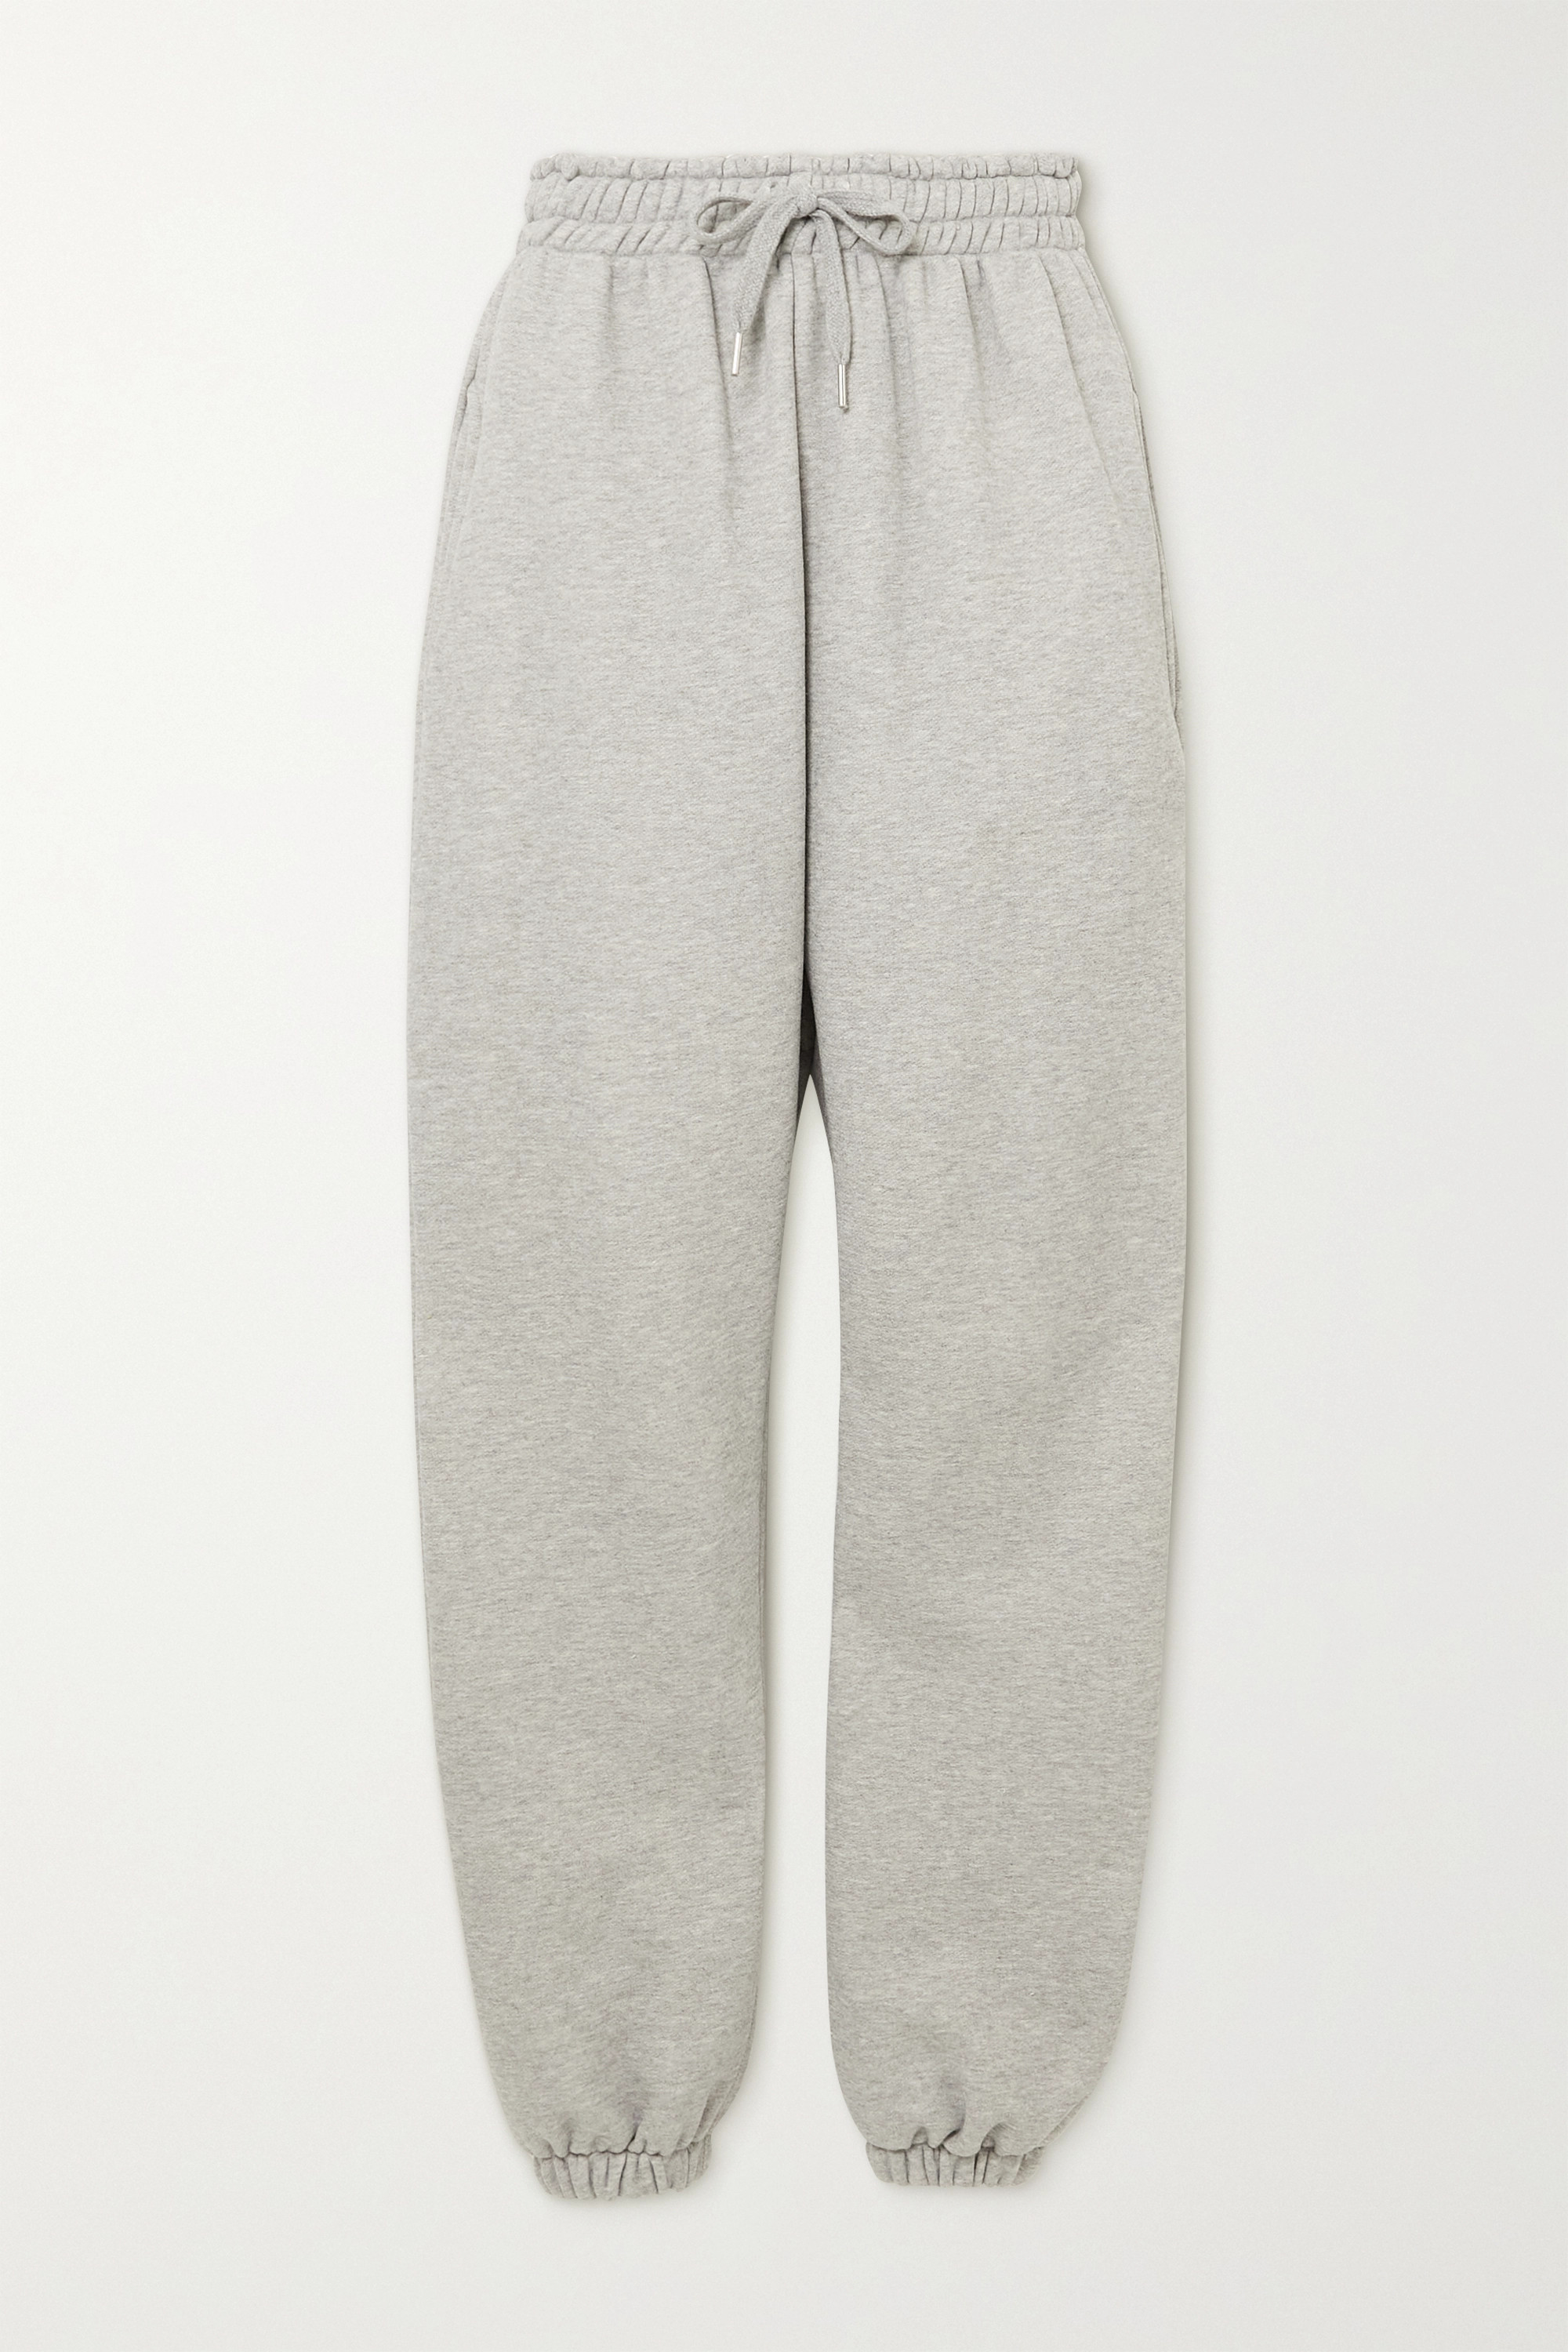 Vanessa cotton-jersey track pants by Frankie, available on net-a-porter.com for $150 Hailey Baldwin Pants Exact Product